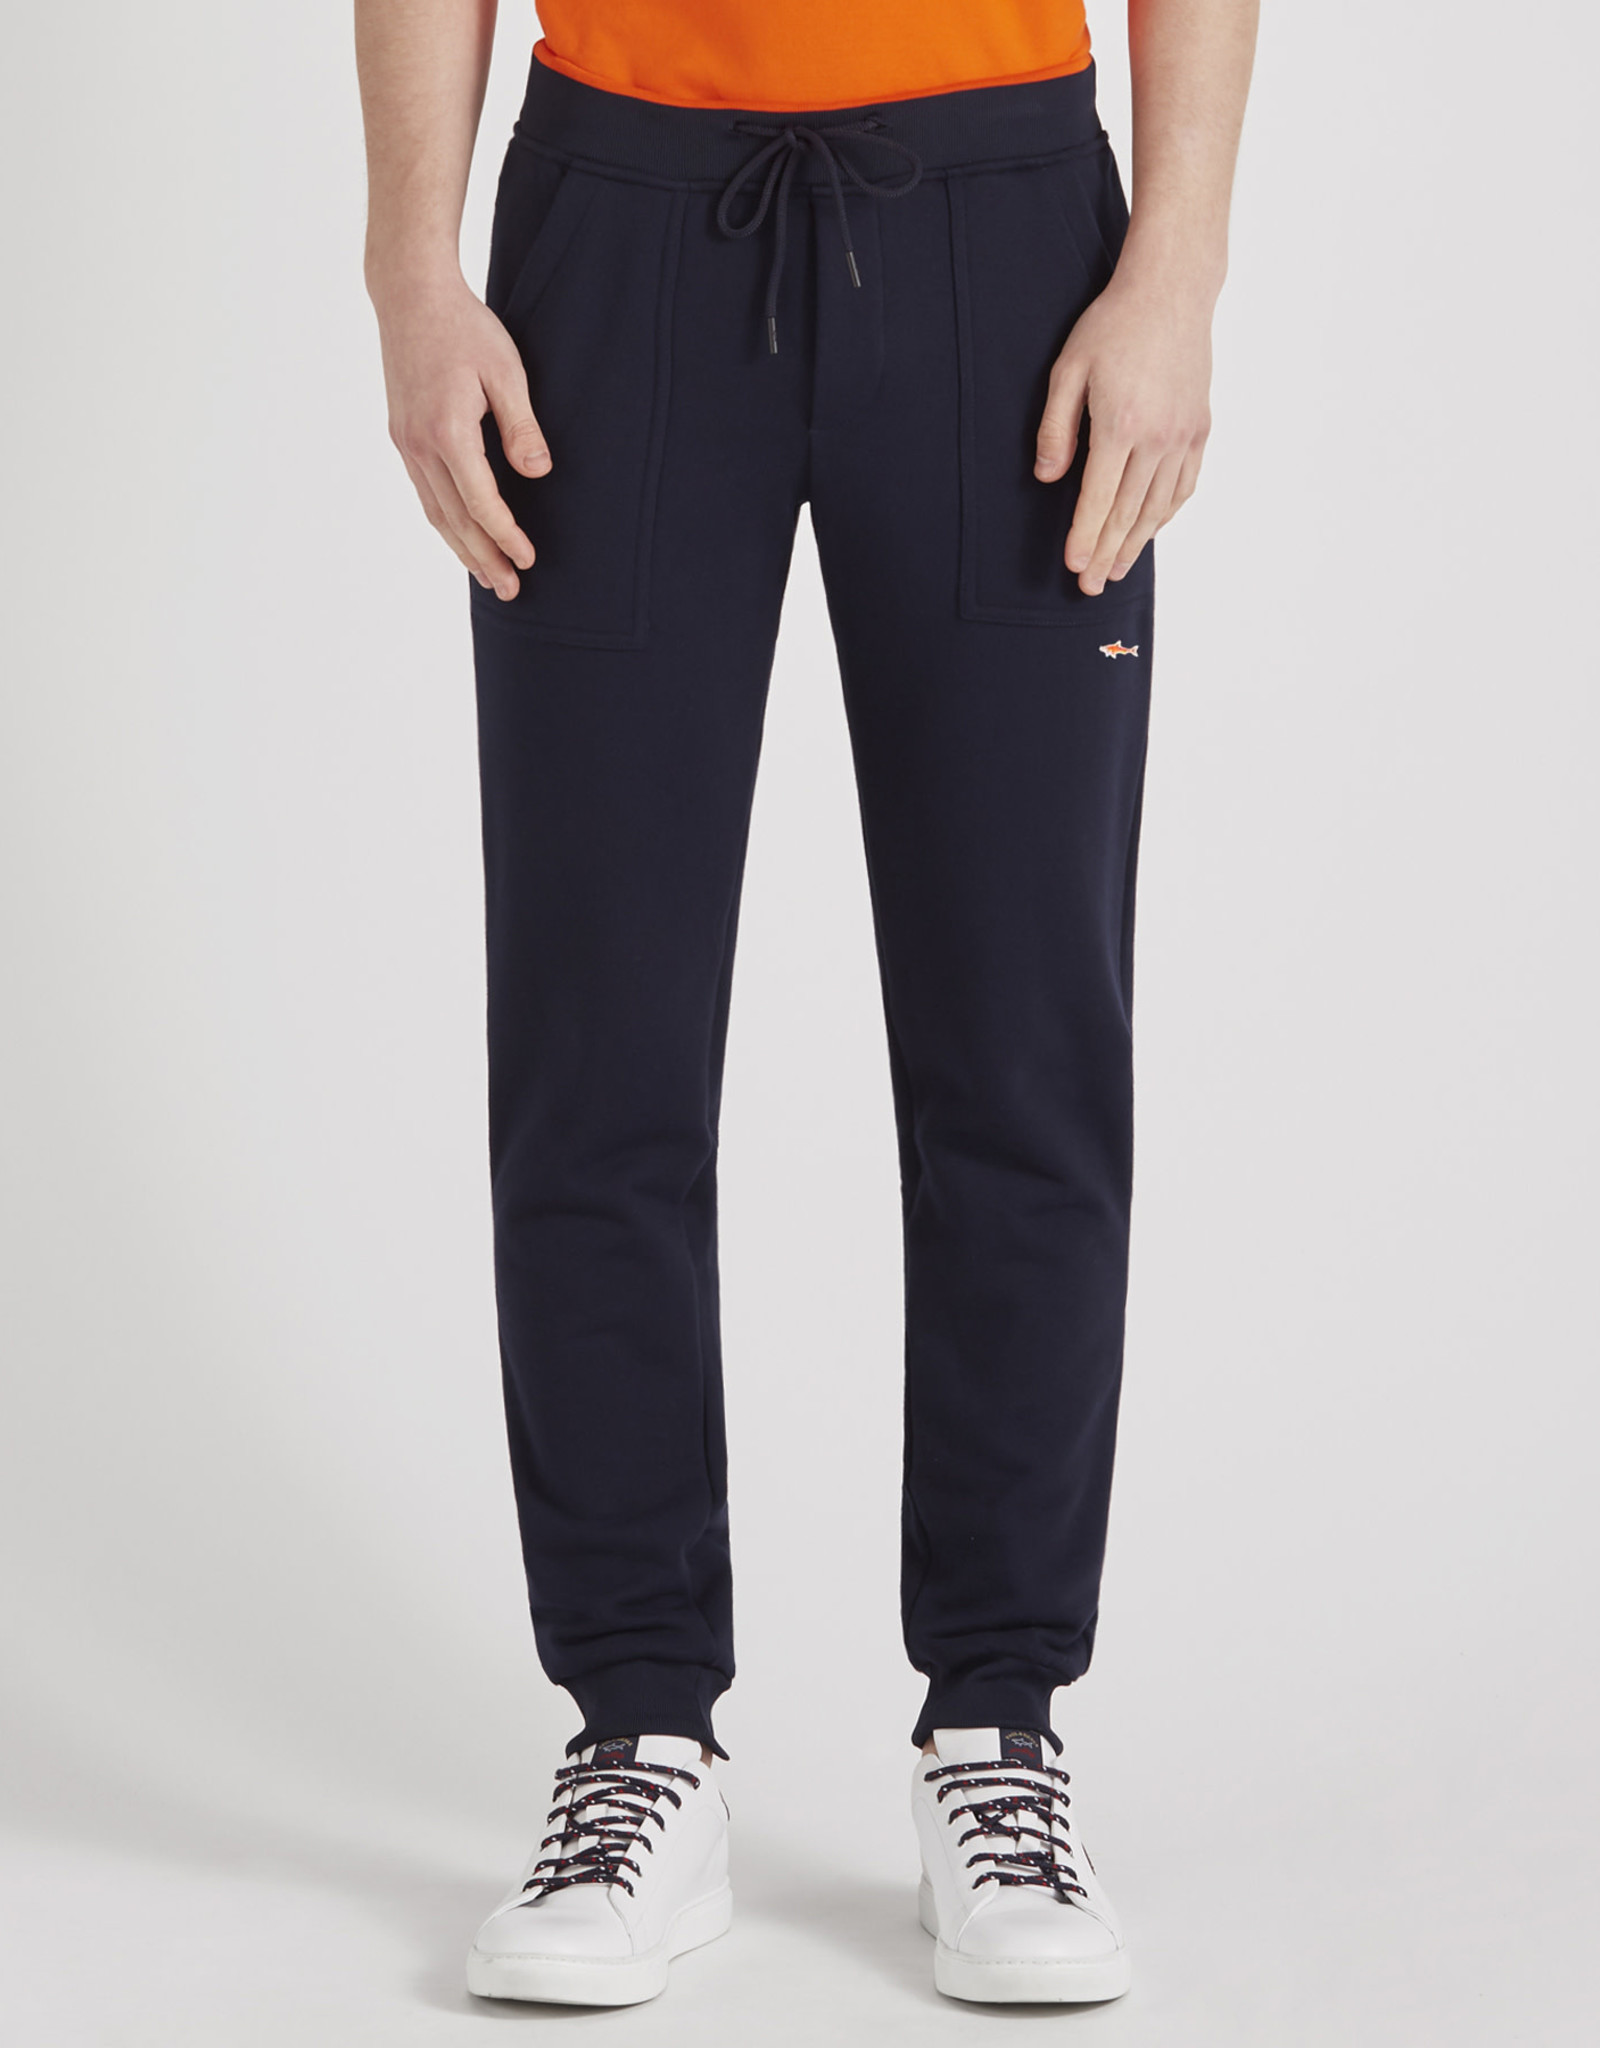 Paul & Shark joggingbroek marine